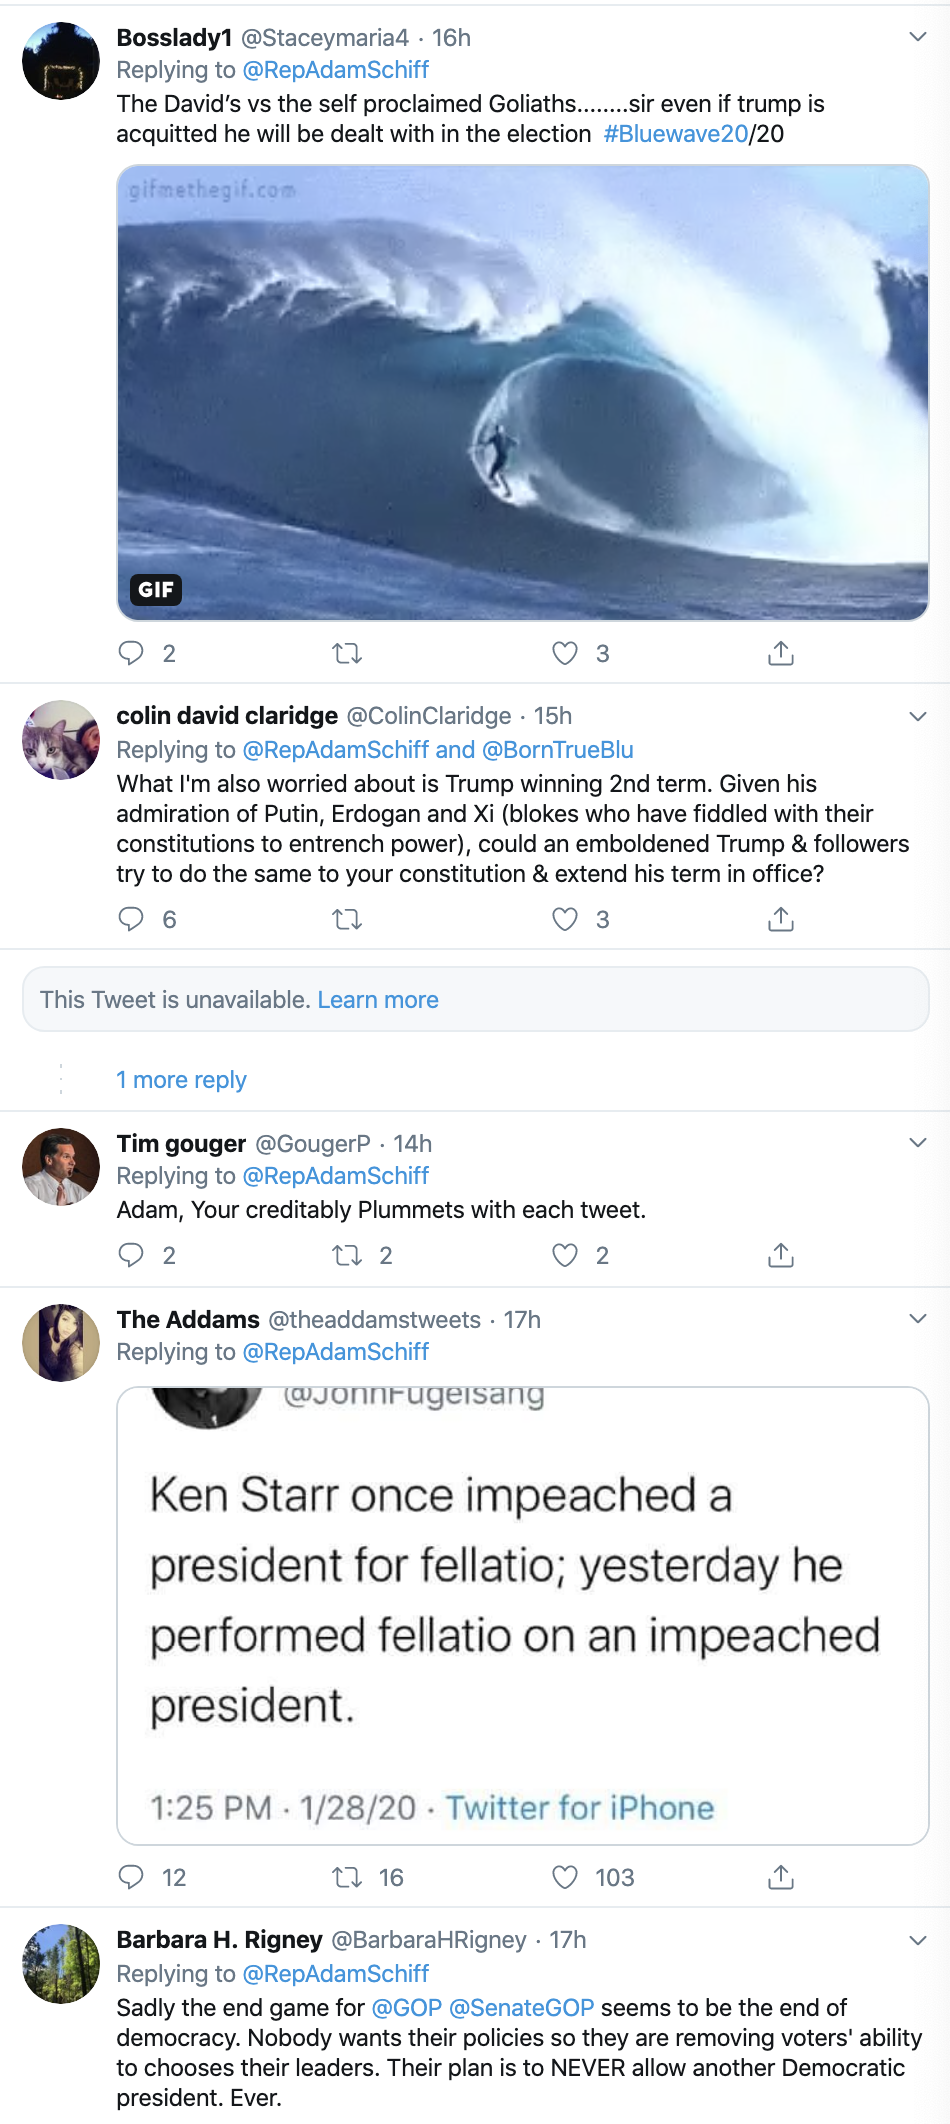 Screen-Shot-2020-01-30-at-8.05.04-AM Schiff Destroys Trump's Lawyer With Multi-Tweet Evidence Declaration Corruption Featured Impeachment Politics Top Stories